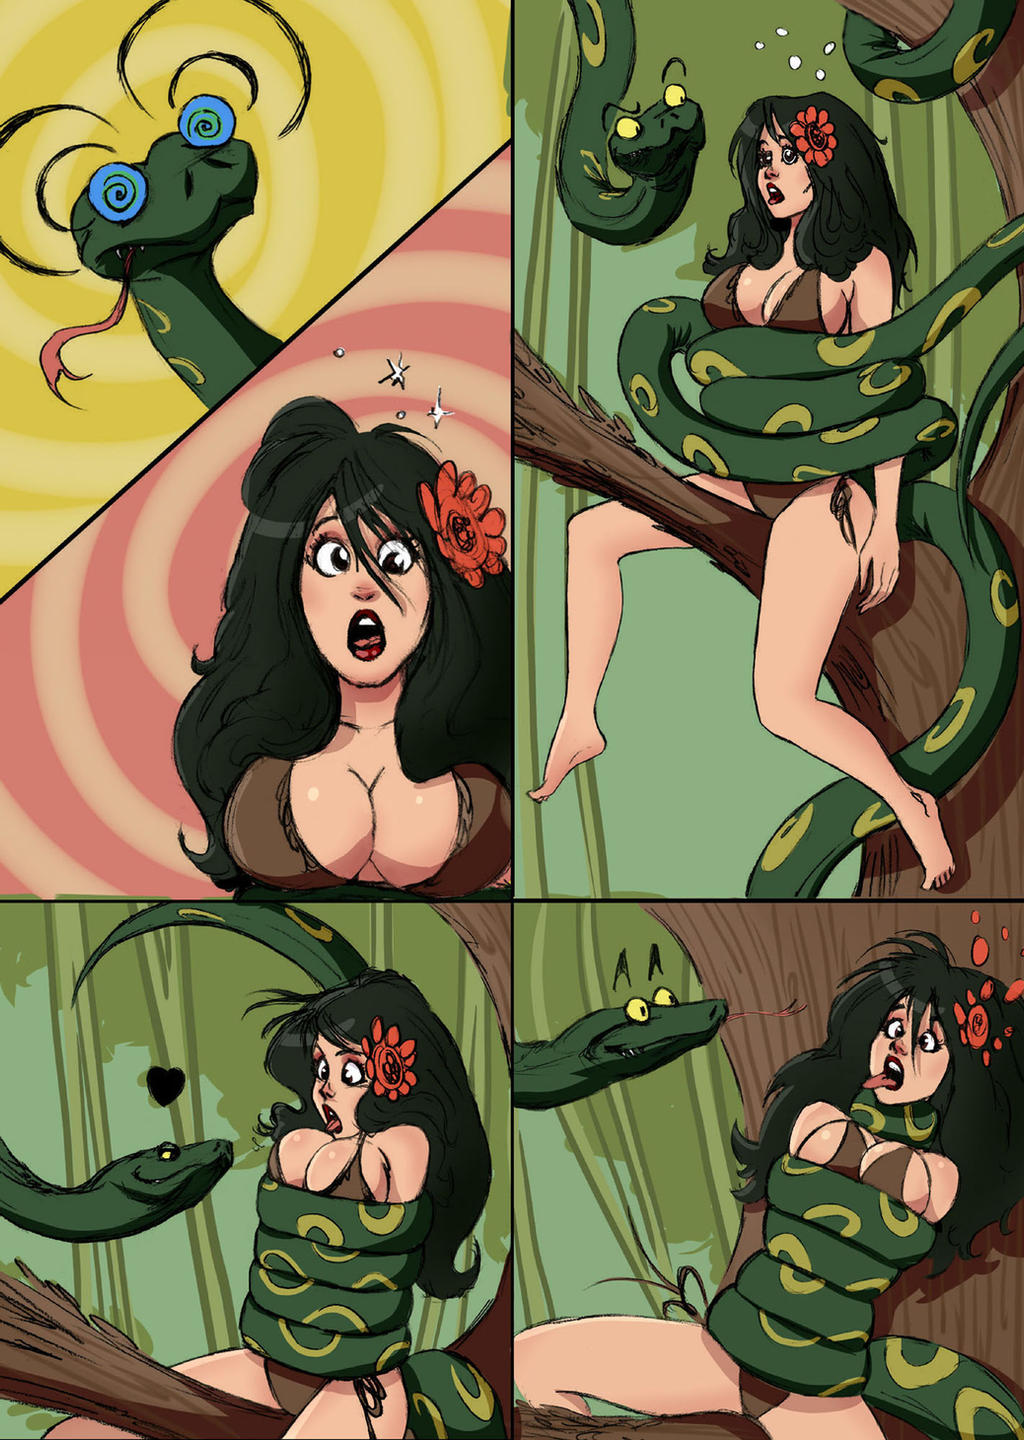 Animated snake girl sex pics fucks gallery